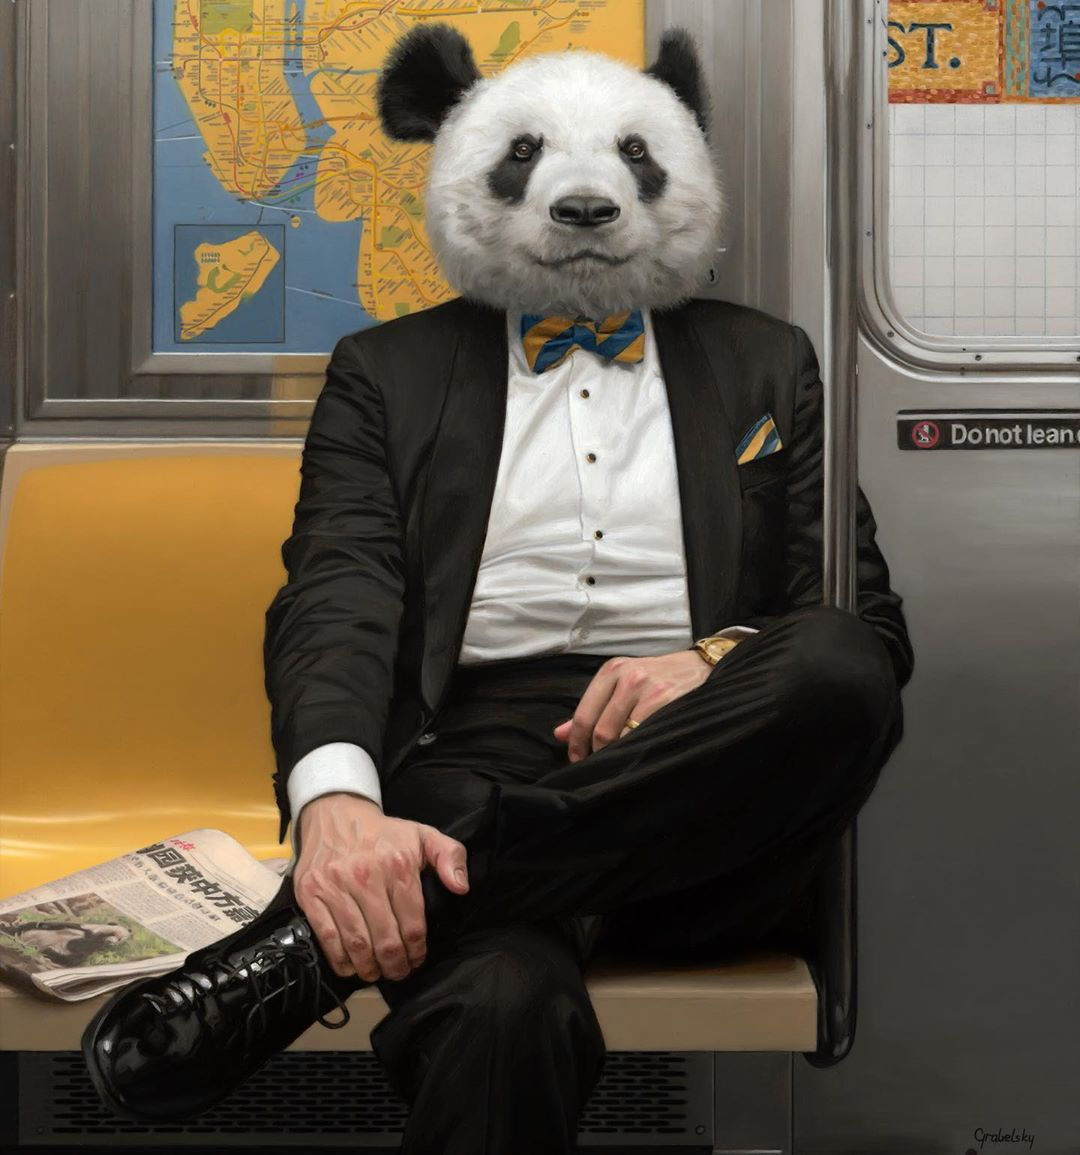 funny oil painting panda man by matthew grabelsky